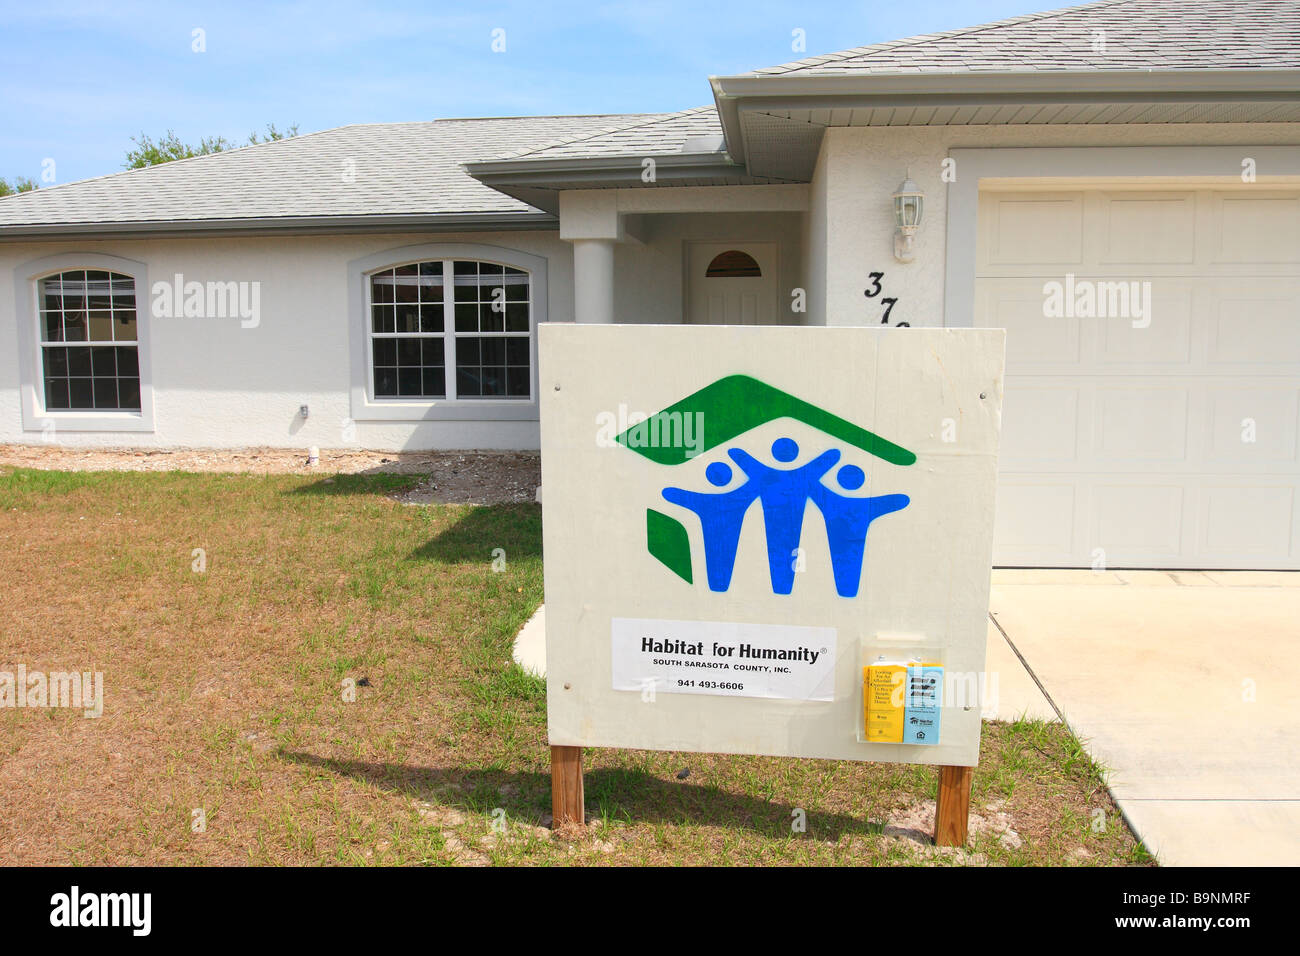 Habitat For Humanity Homes Building Project